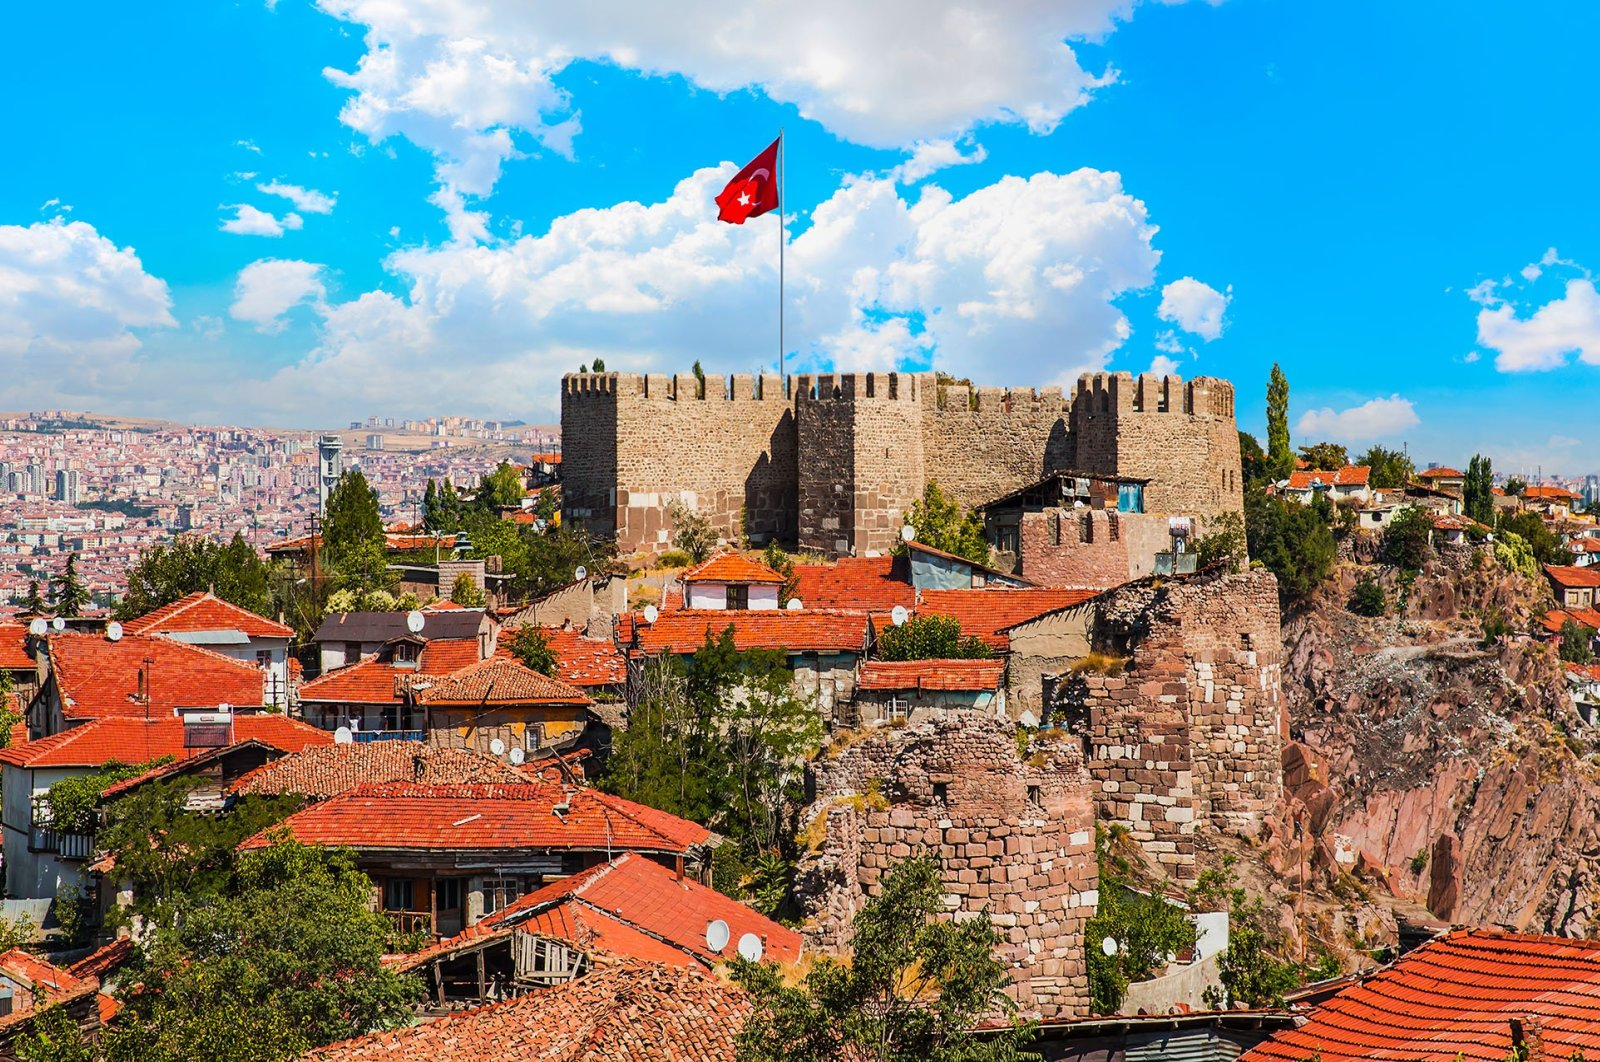 Ankara's imposing citadel can be spotted from any point in the city with a clear view. (Shutterstock Photo)